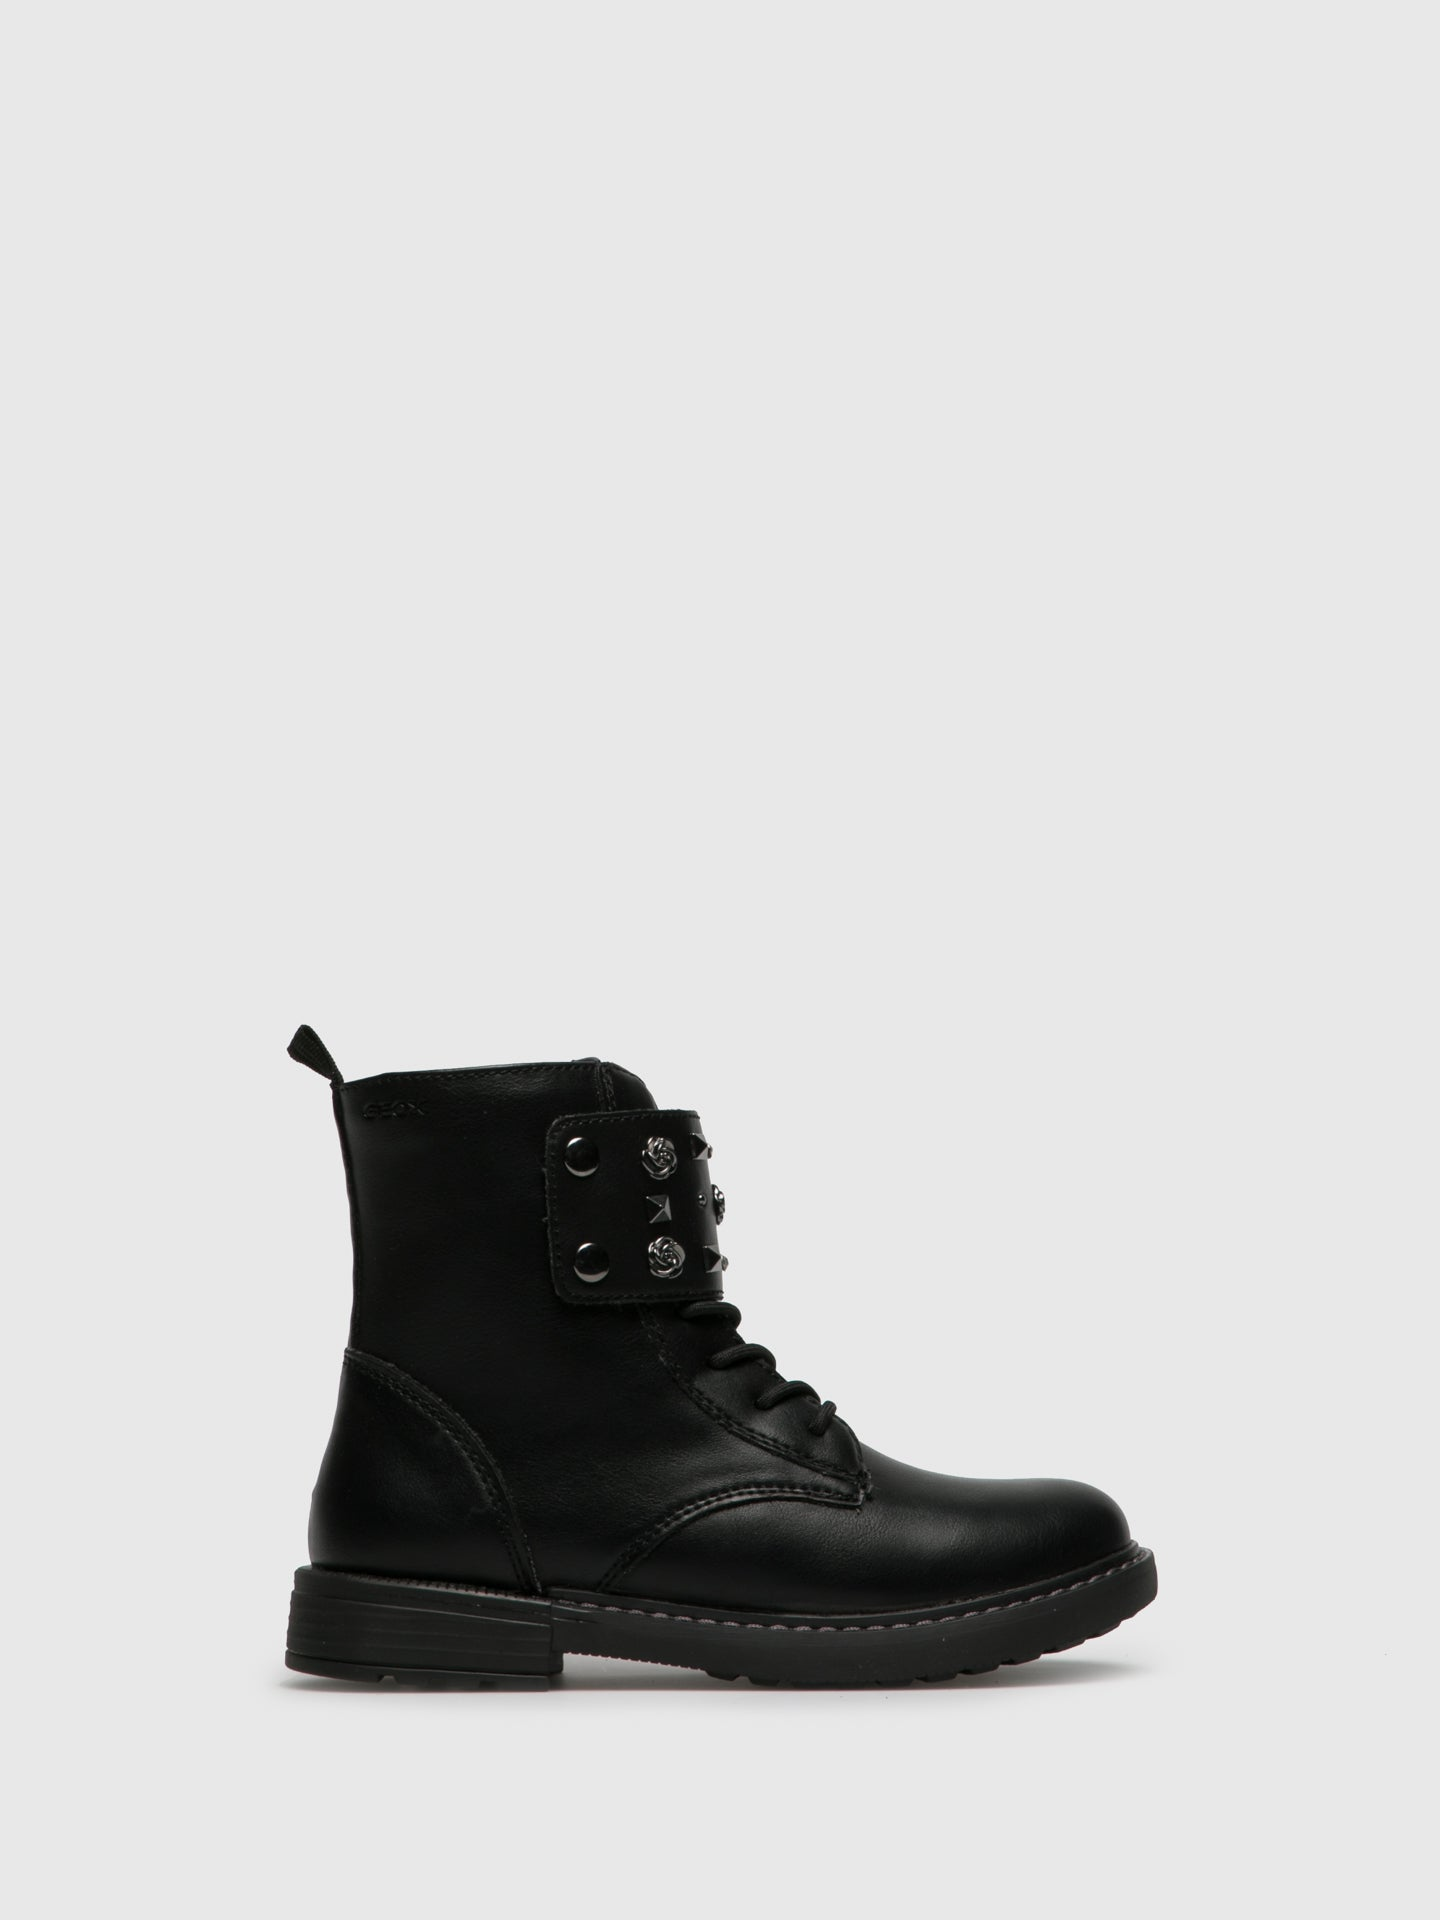 Geox Coal Black Zip Up Boots